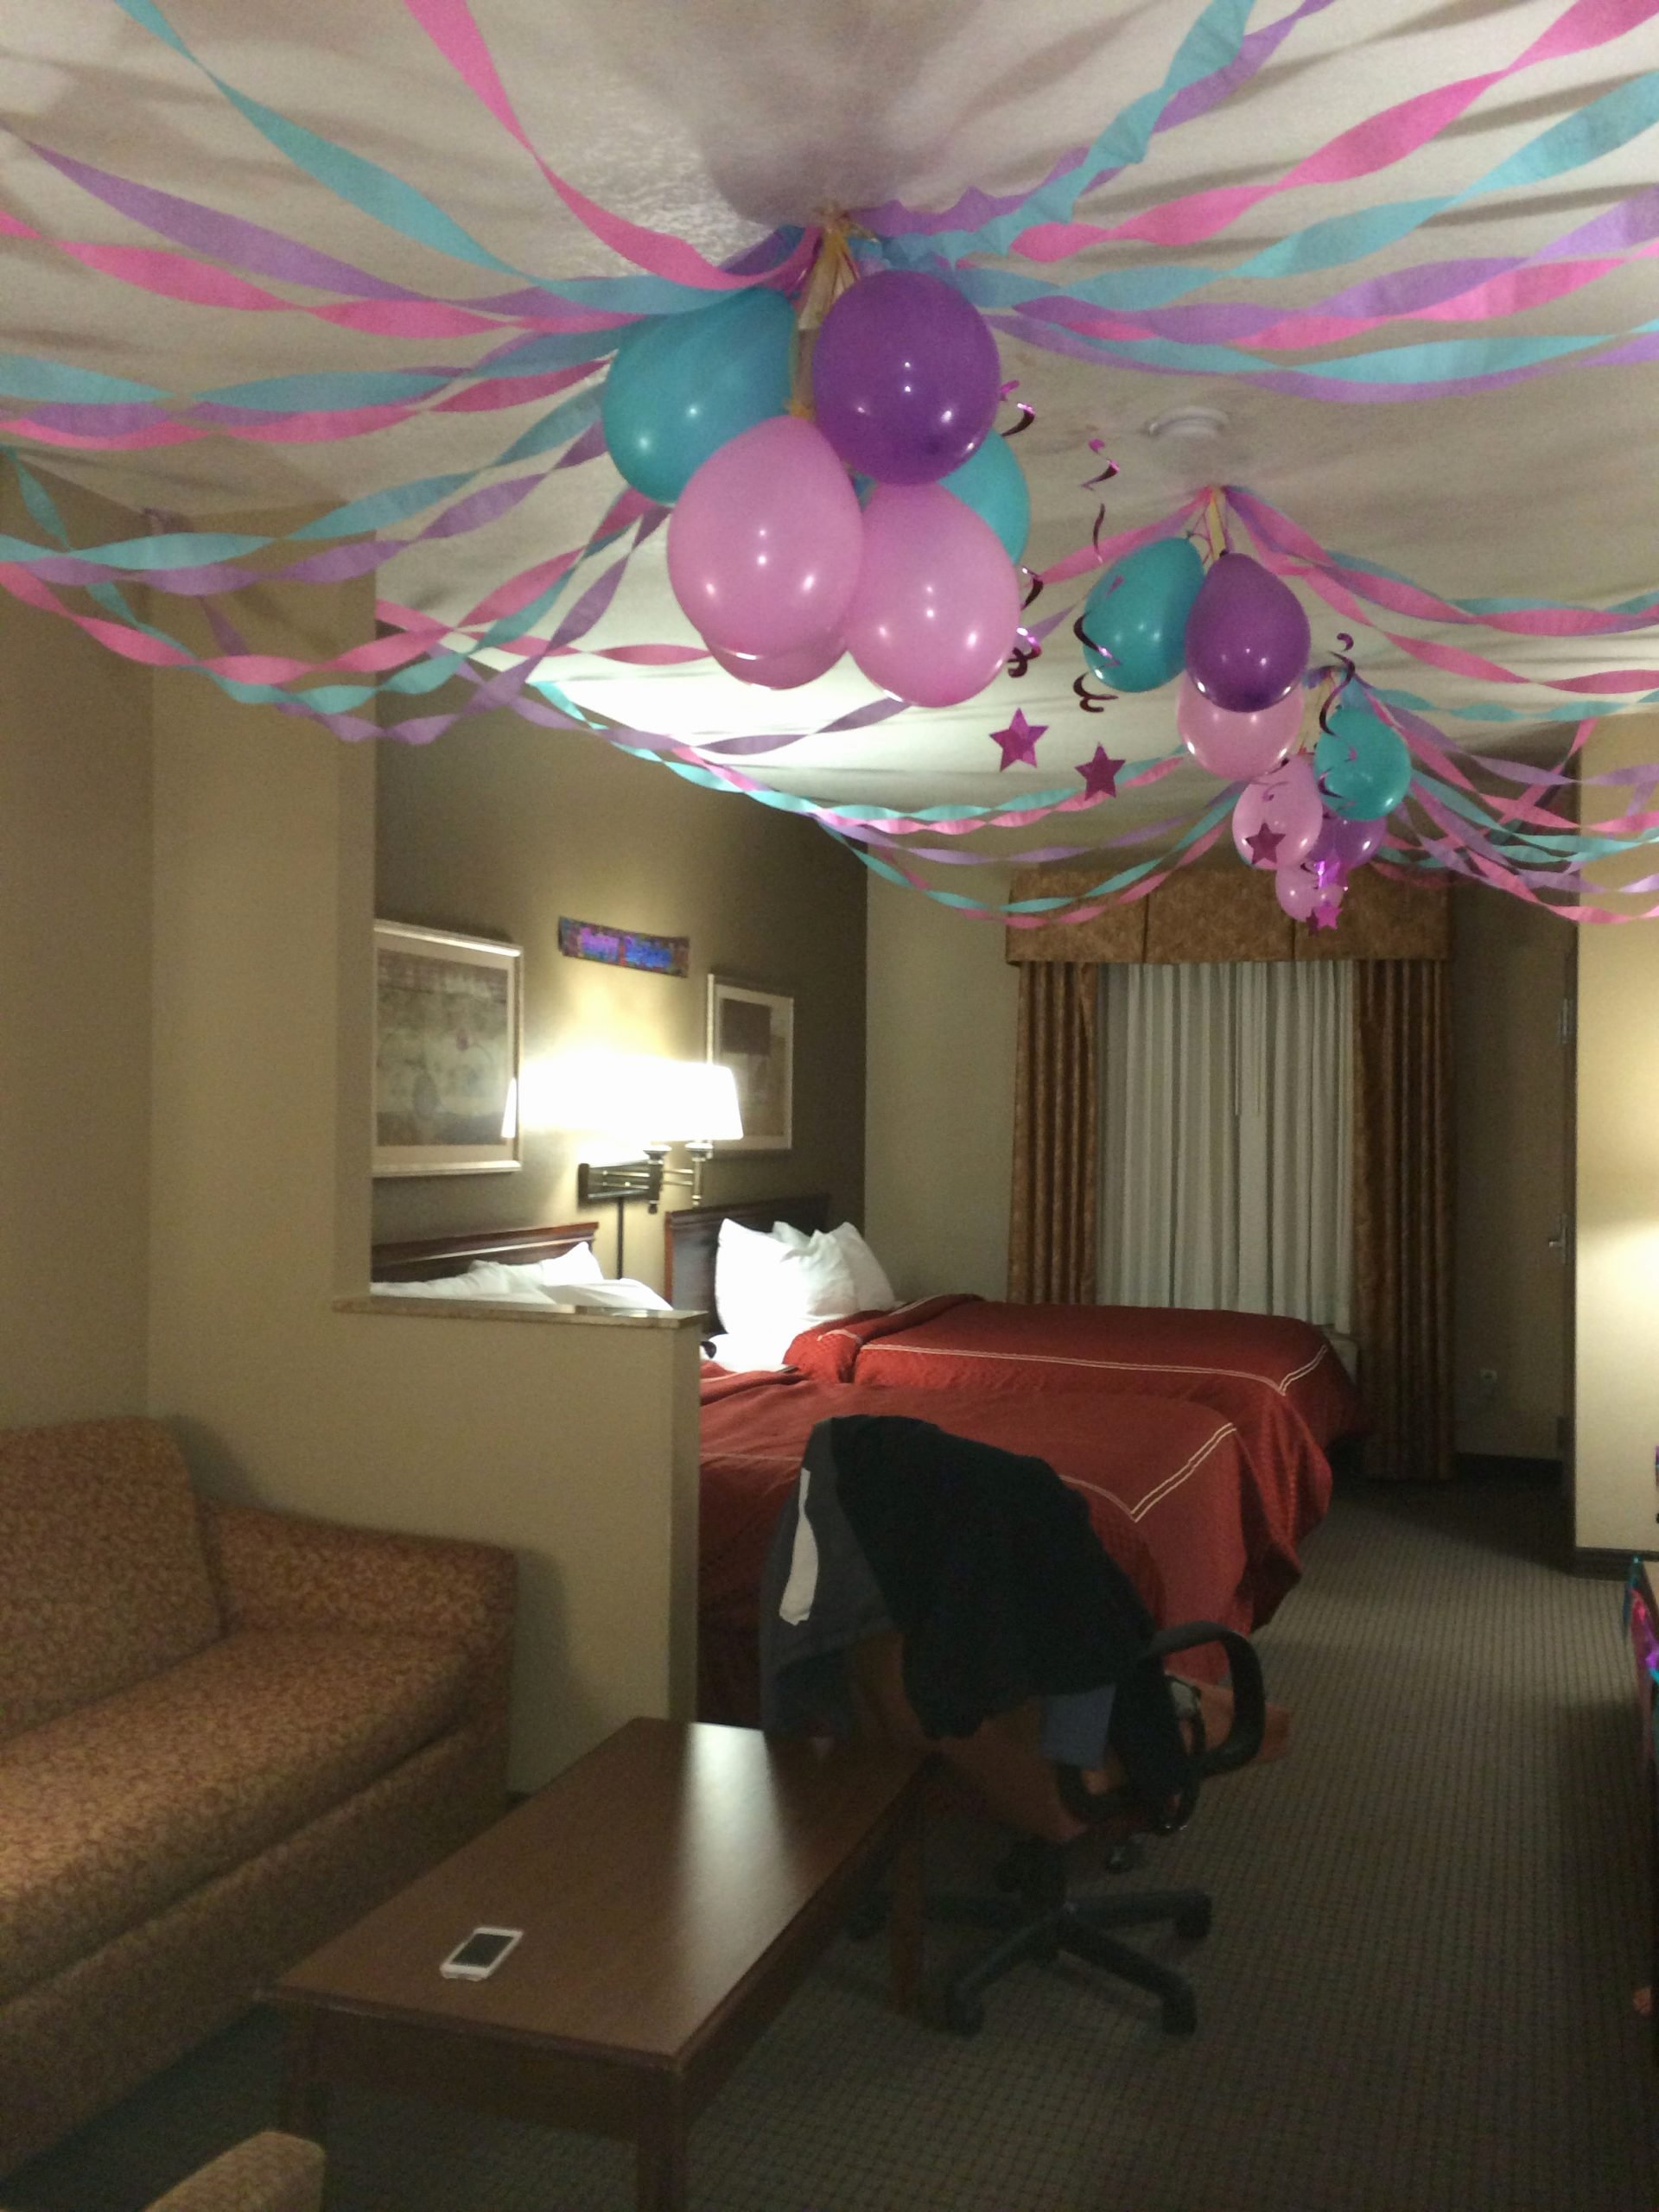 Birthday Decoration Ideas for Hotel Room Best Of Birthday Party In A Hotel Room Invertedballons Streamers